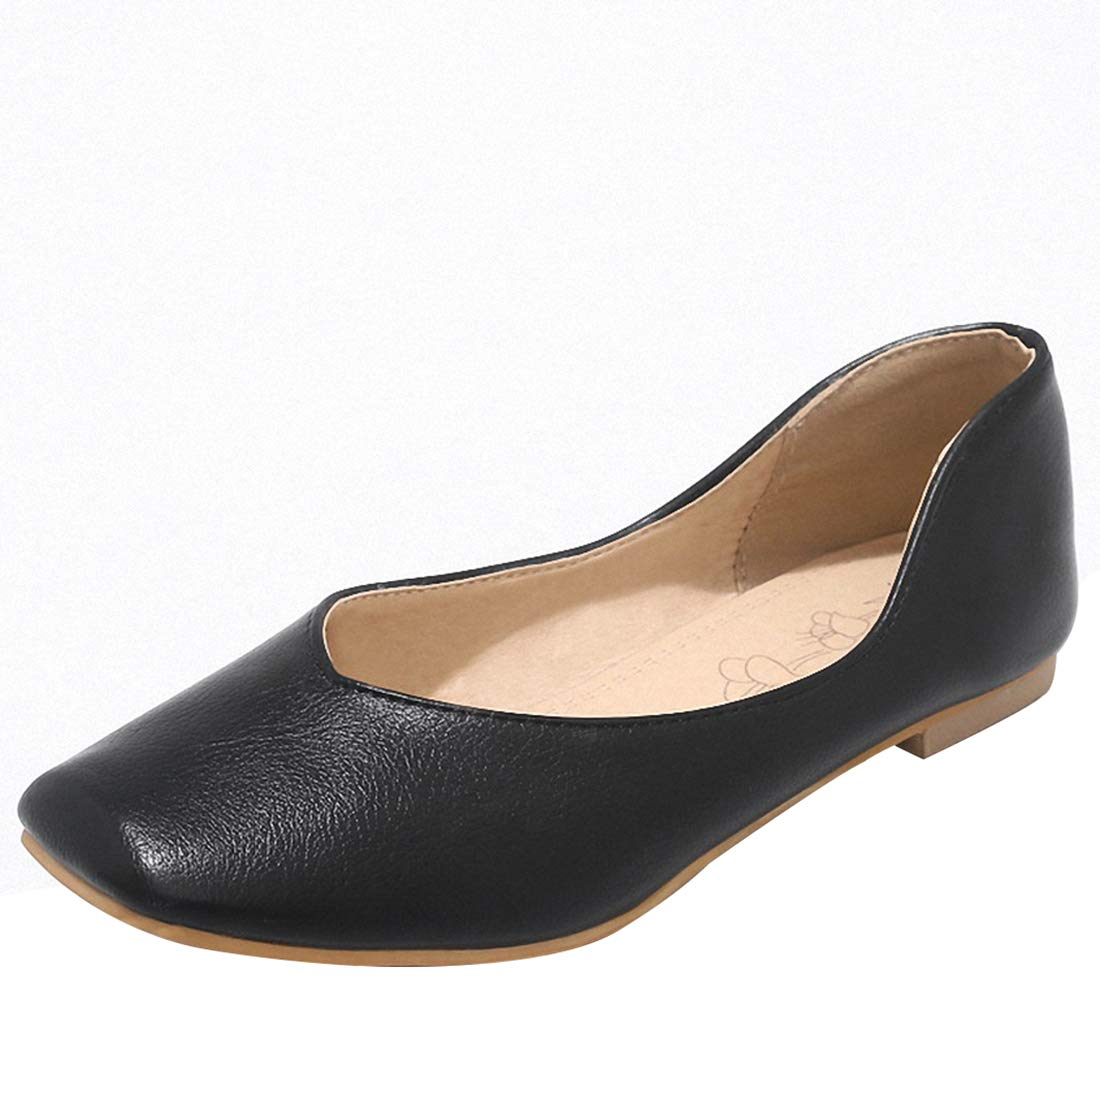 Eithy Women Candy Ballerina Ballet Flats Square Toe Casual Slip-on Comfort Walking Shoes Black US 11